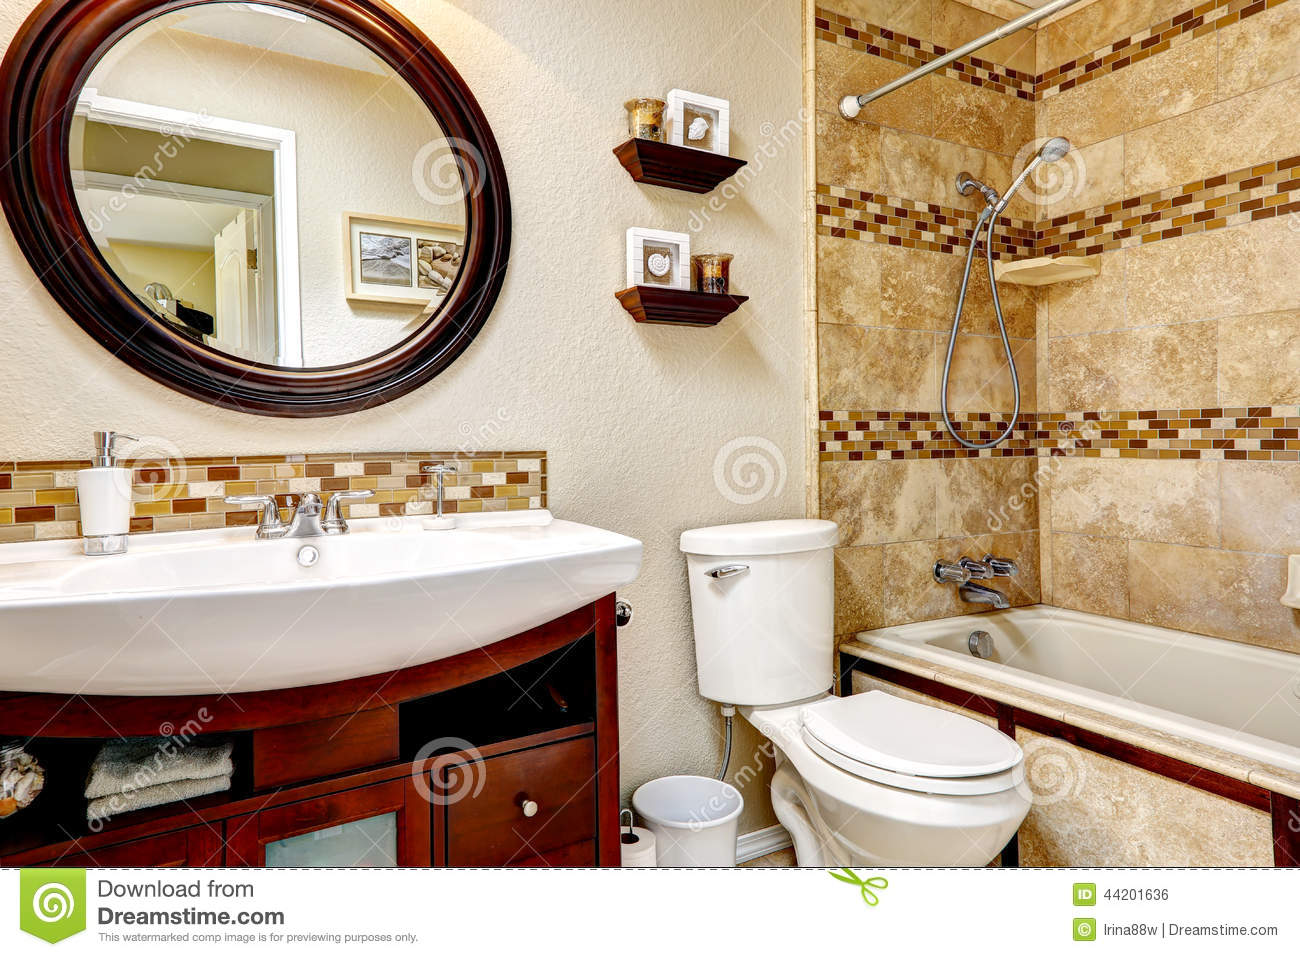 Bathroom with tile wall trim stock photo image 44201636 for Round mirror bathroom cabinet